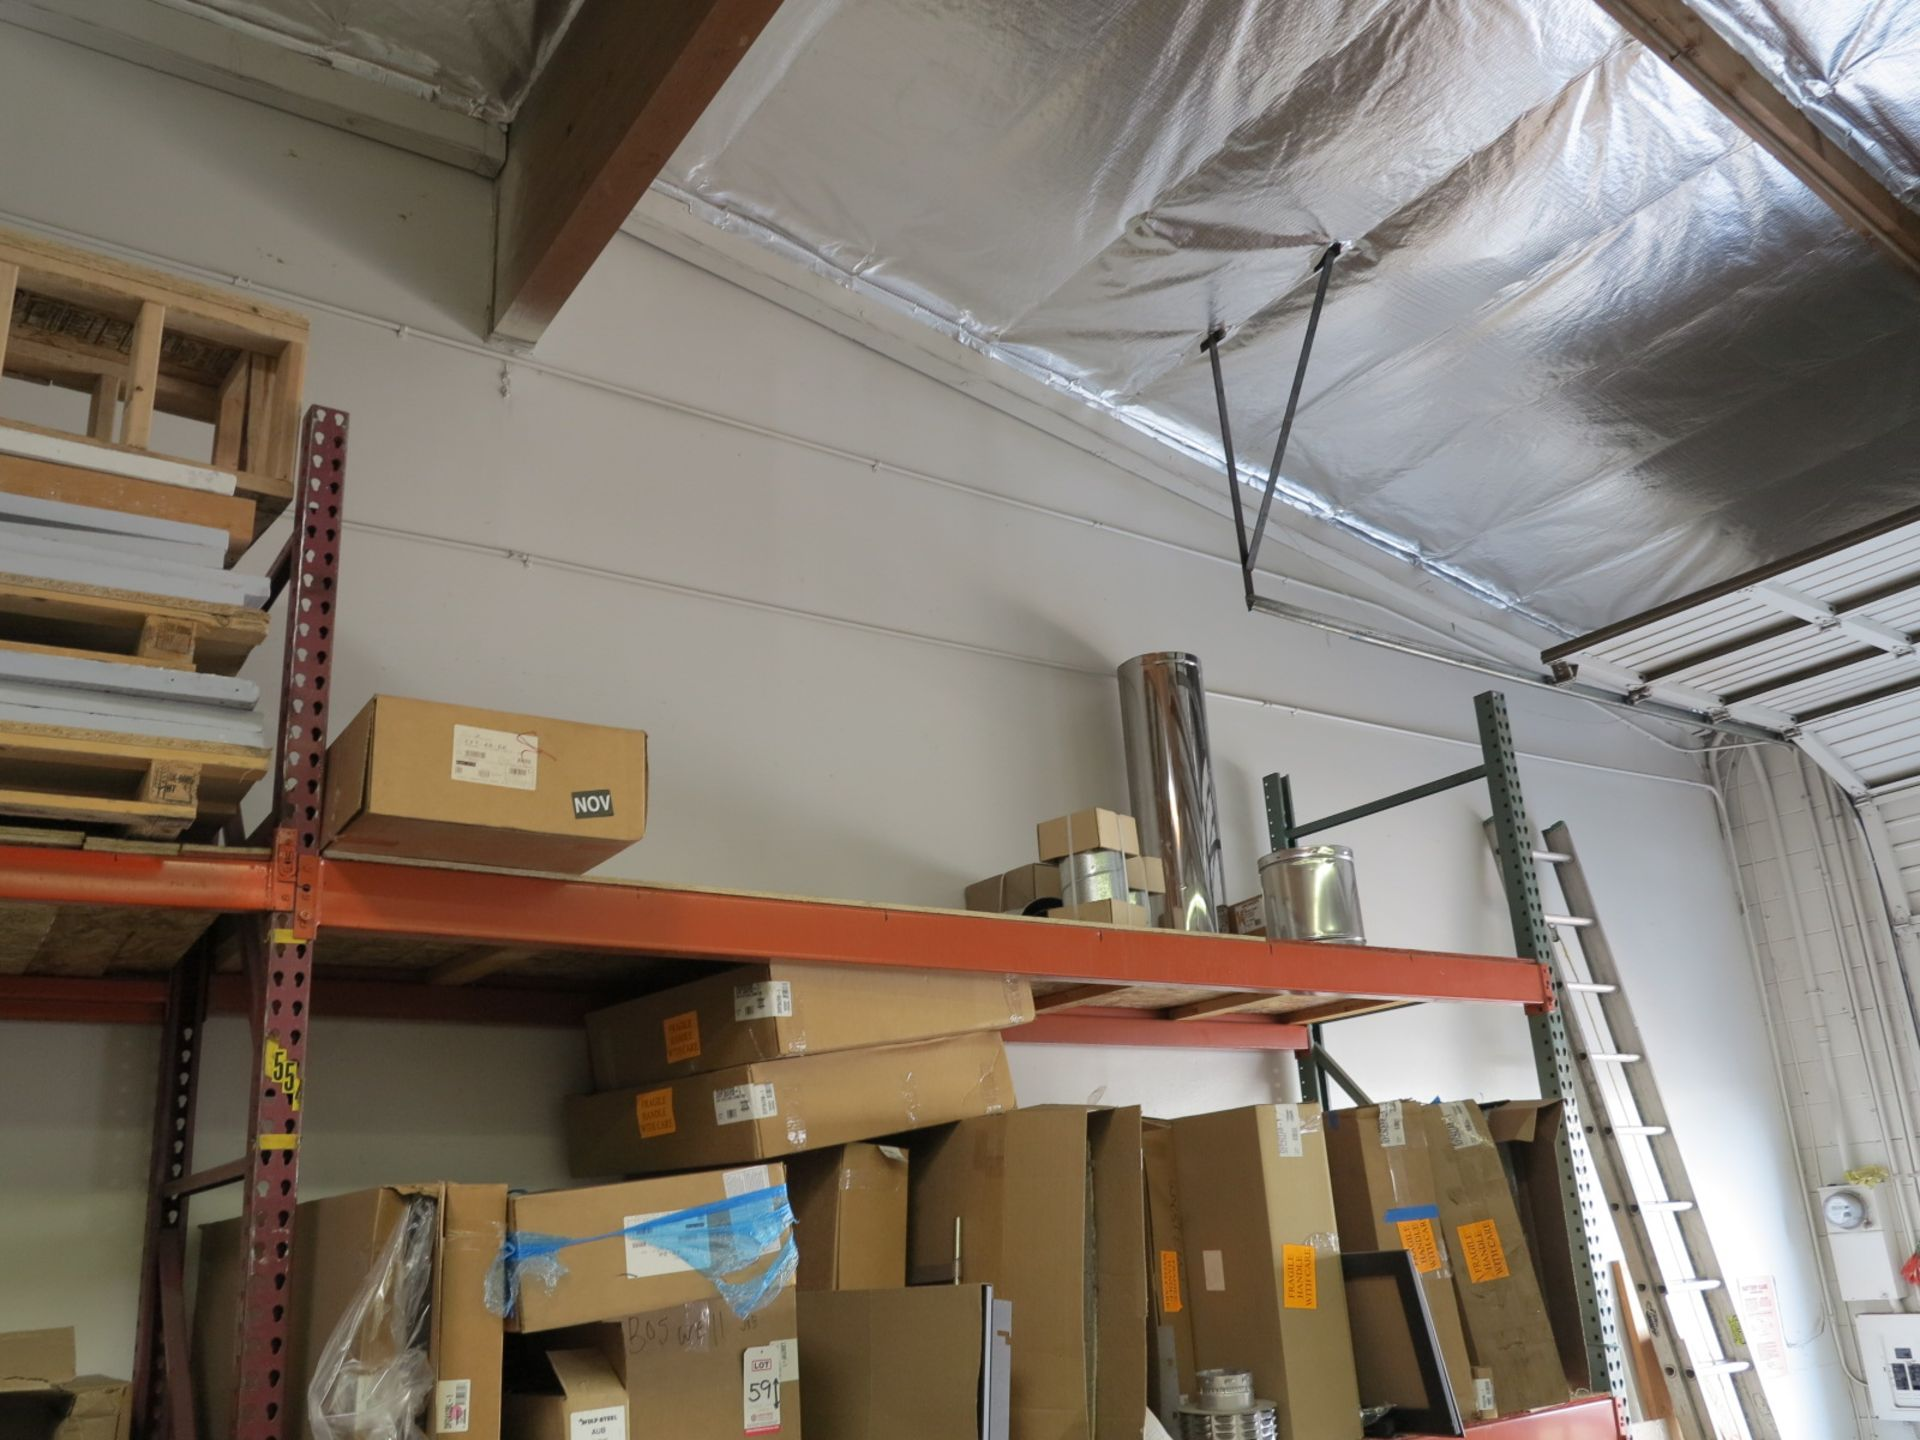 LOT - CONTENTS OF (1) SECTION OF PALLET RACKING, MISC STOVE PARTS - Image 3 of 3